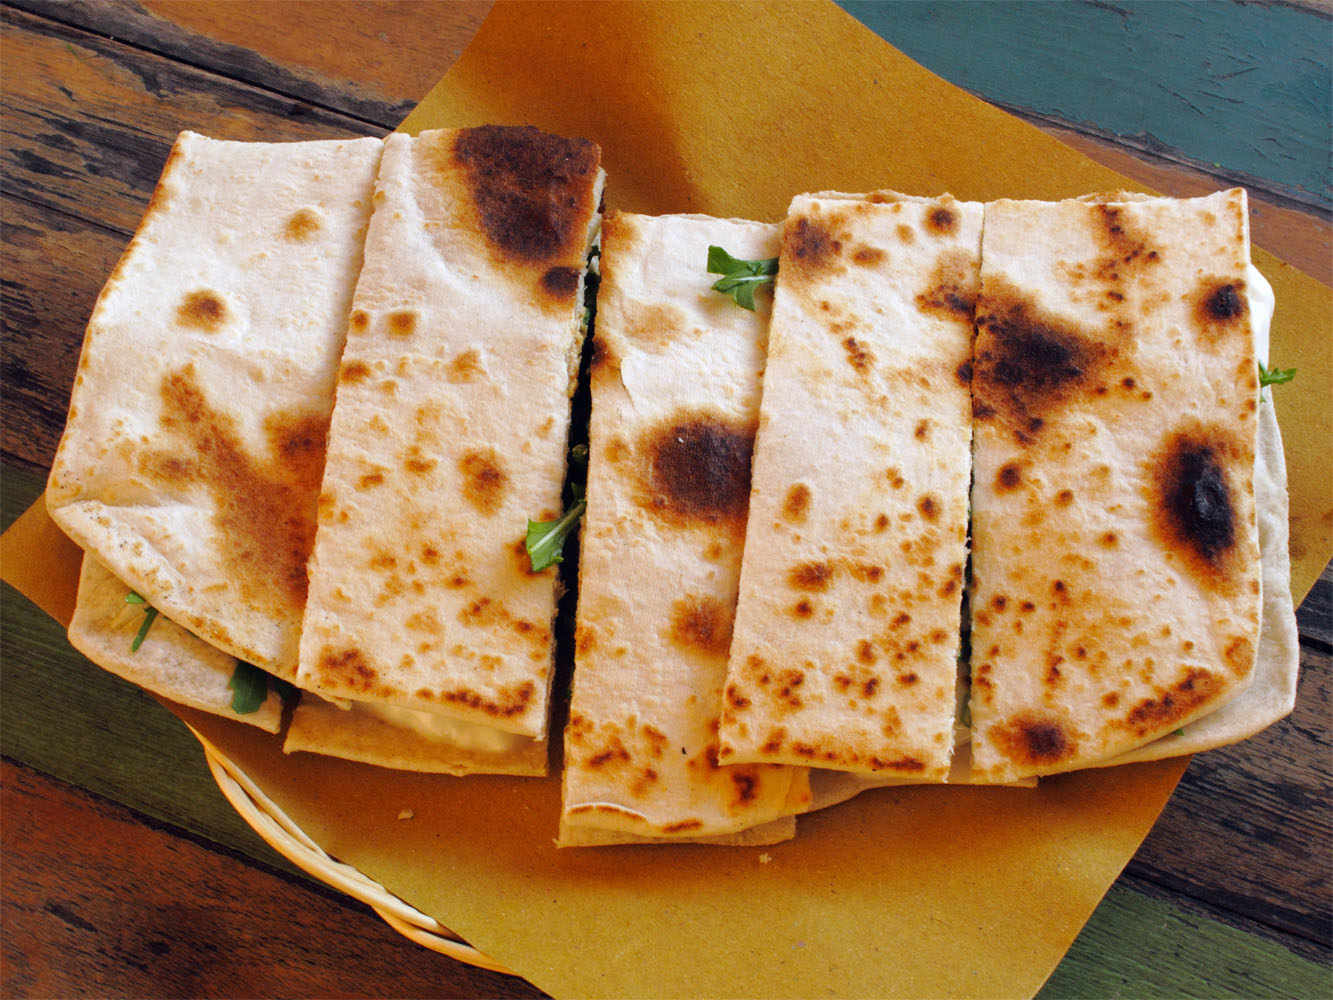 Piadina lends itself perfectly to processed and cured meats